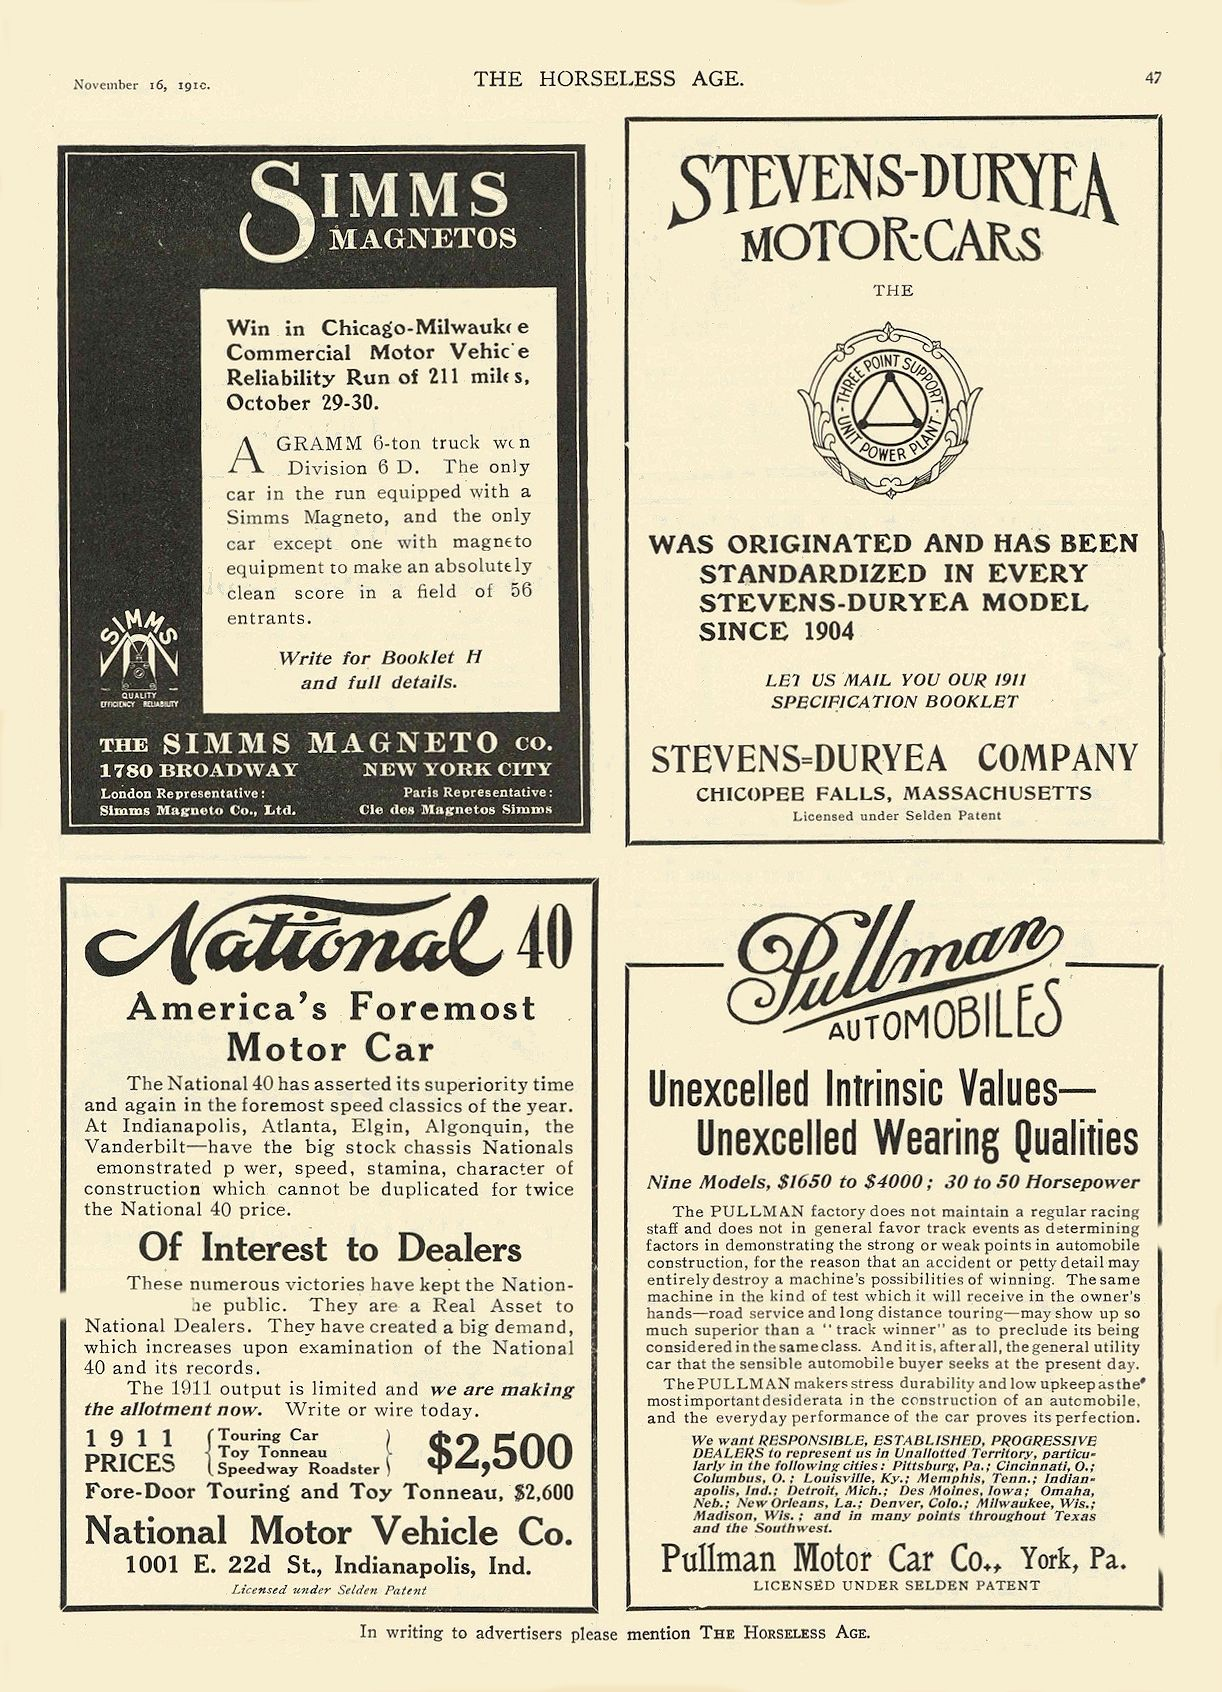 1911 11 16 NATIONAL National 40 America's Foremost Motor Car National Motor Vehicle Co. Indianapolis, IND THE HORSELESS AGE November 16, 1910 8.5″x11.75″ page 47